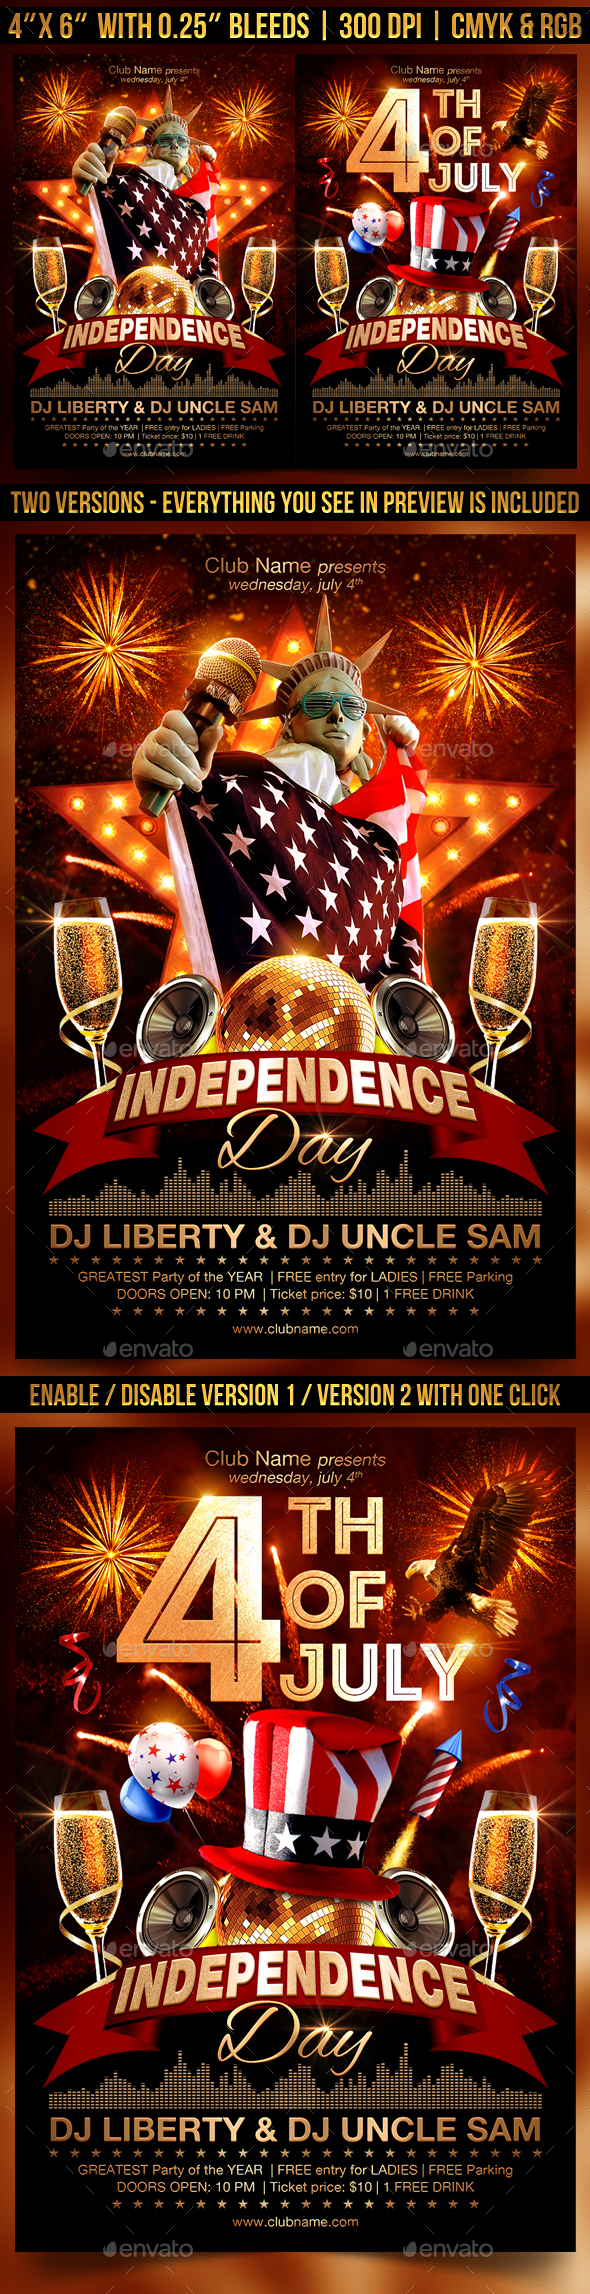 4th Of July Independence Day Flyer Template - Clubs & Parties Events